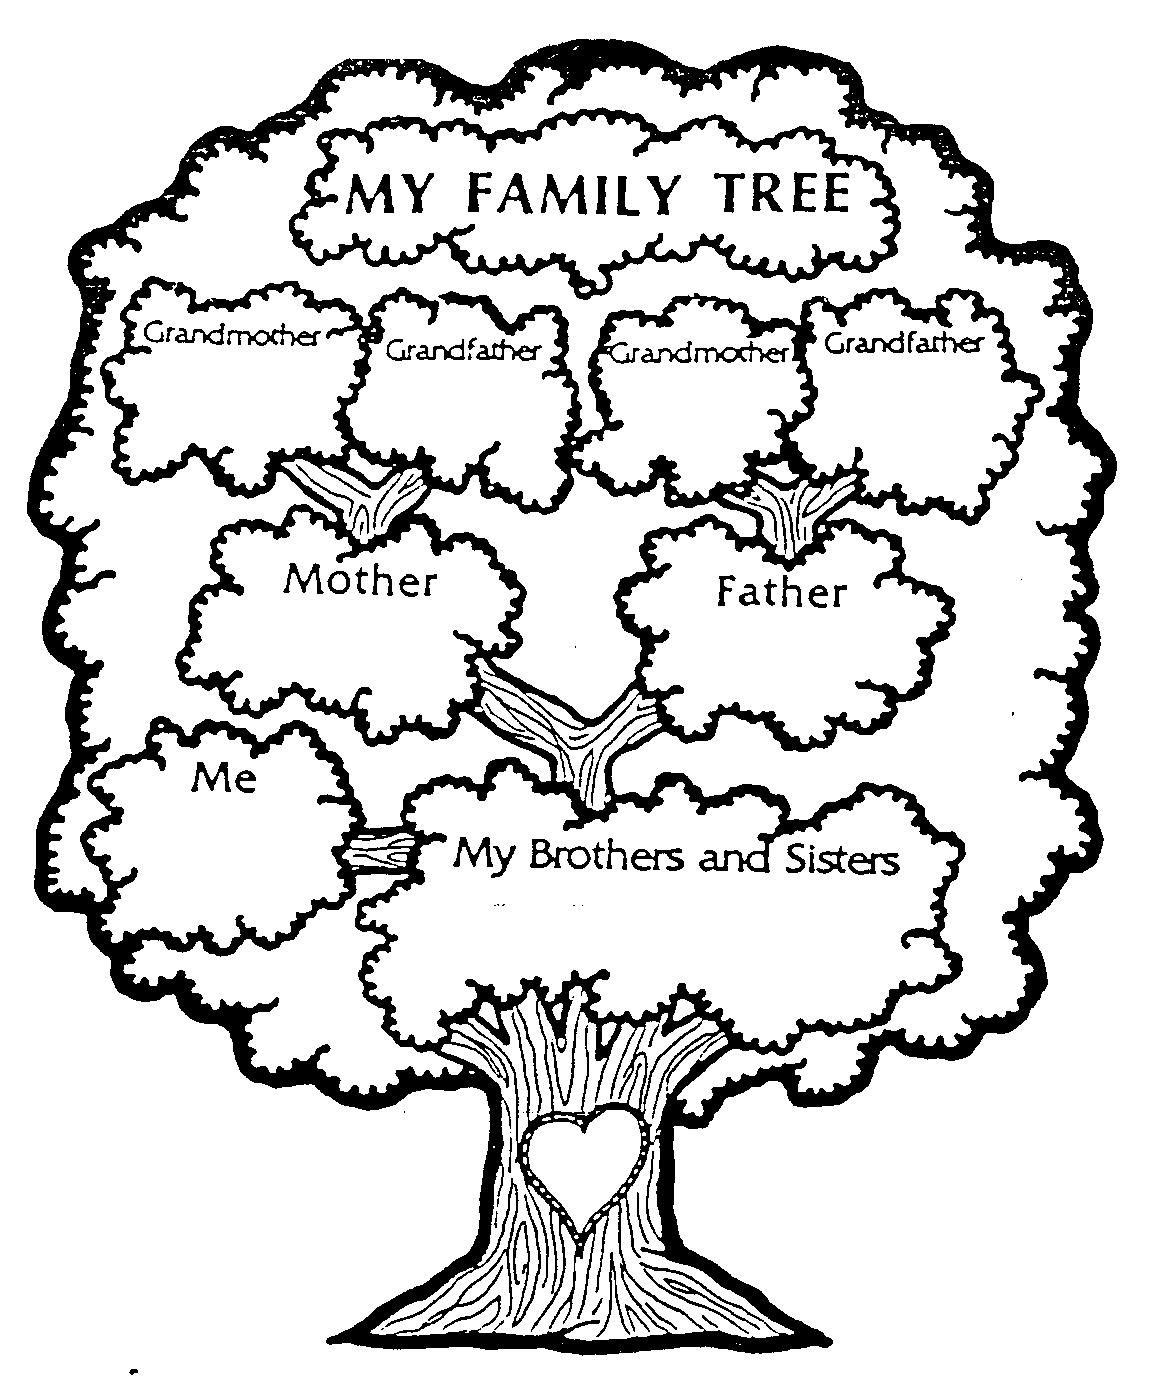 Pin by Carly Van Dyke on Activity Days | Family tree for